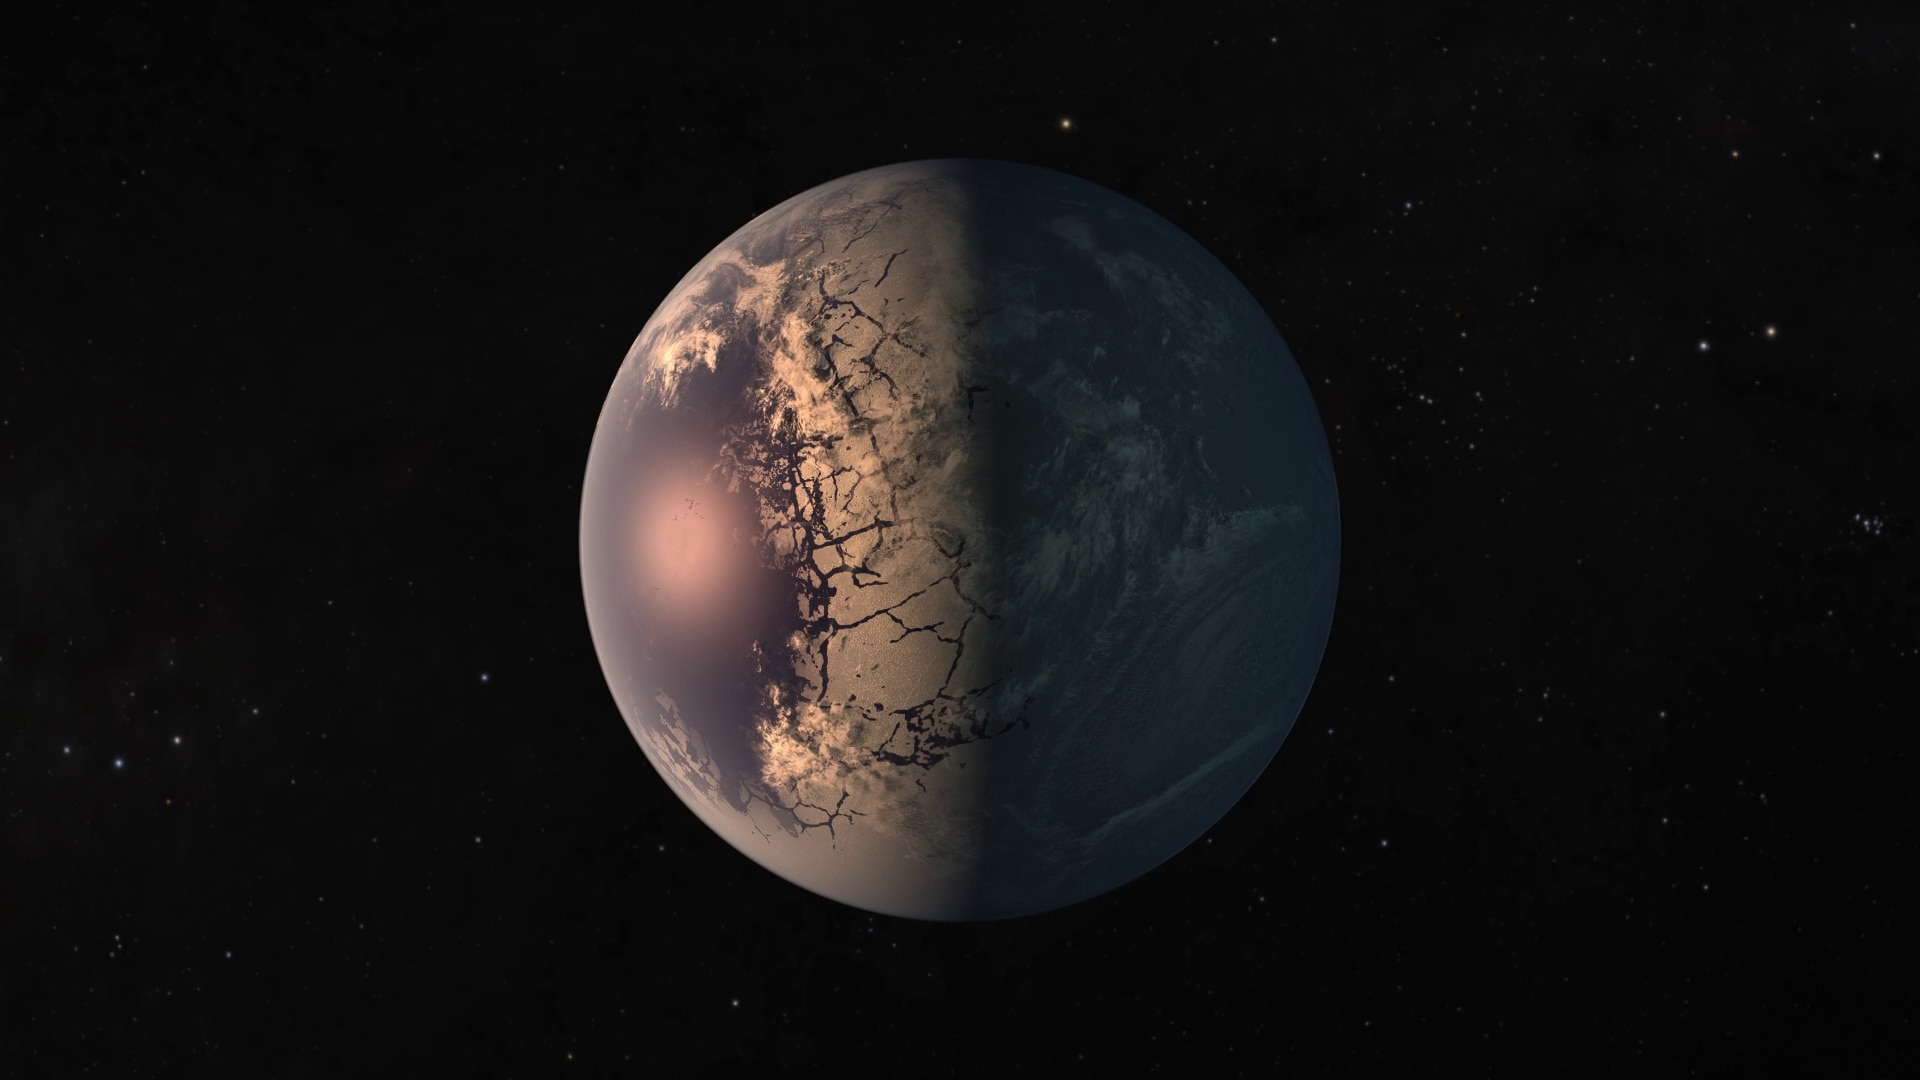 Trappist-1 f, one of the planets in the habitable zone of the star.